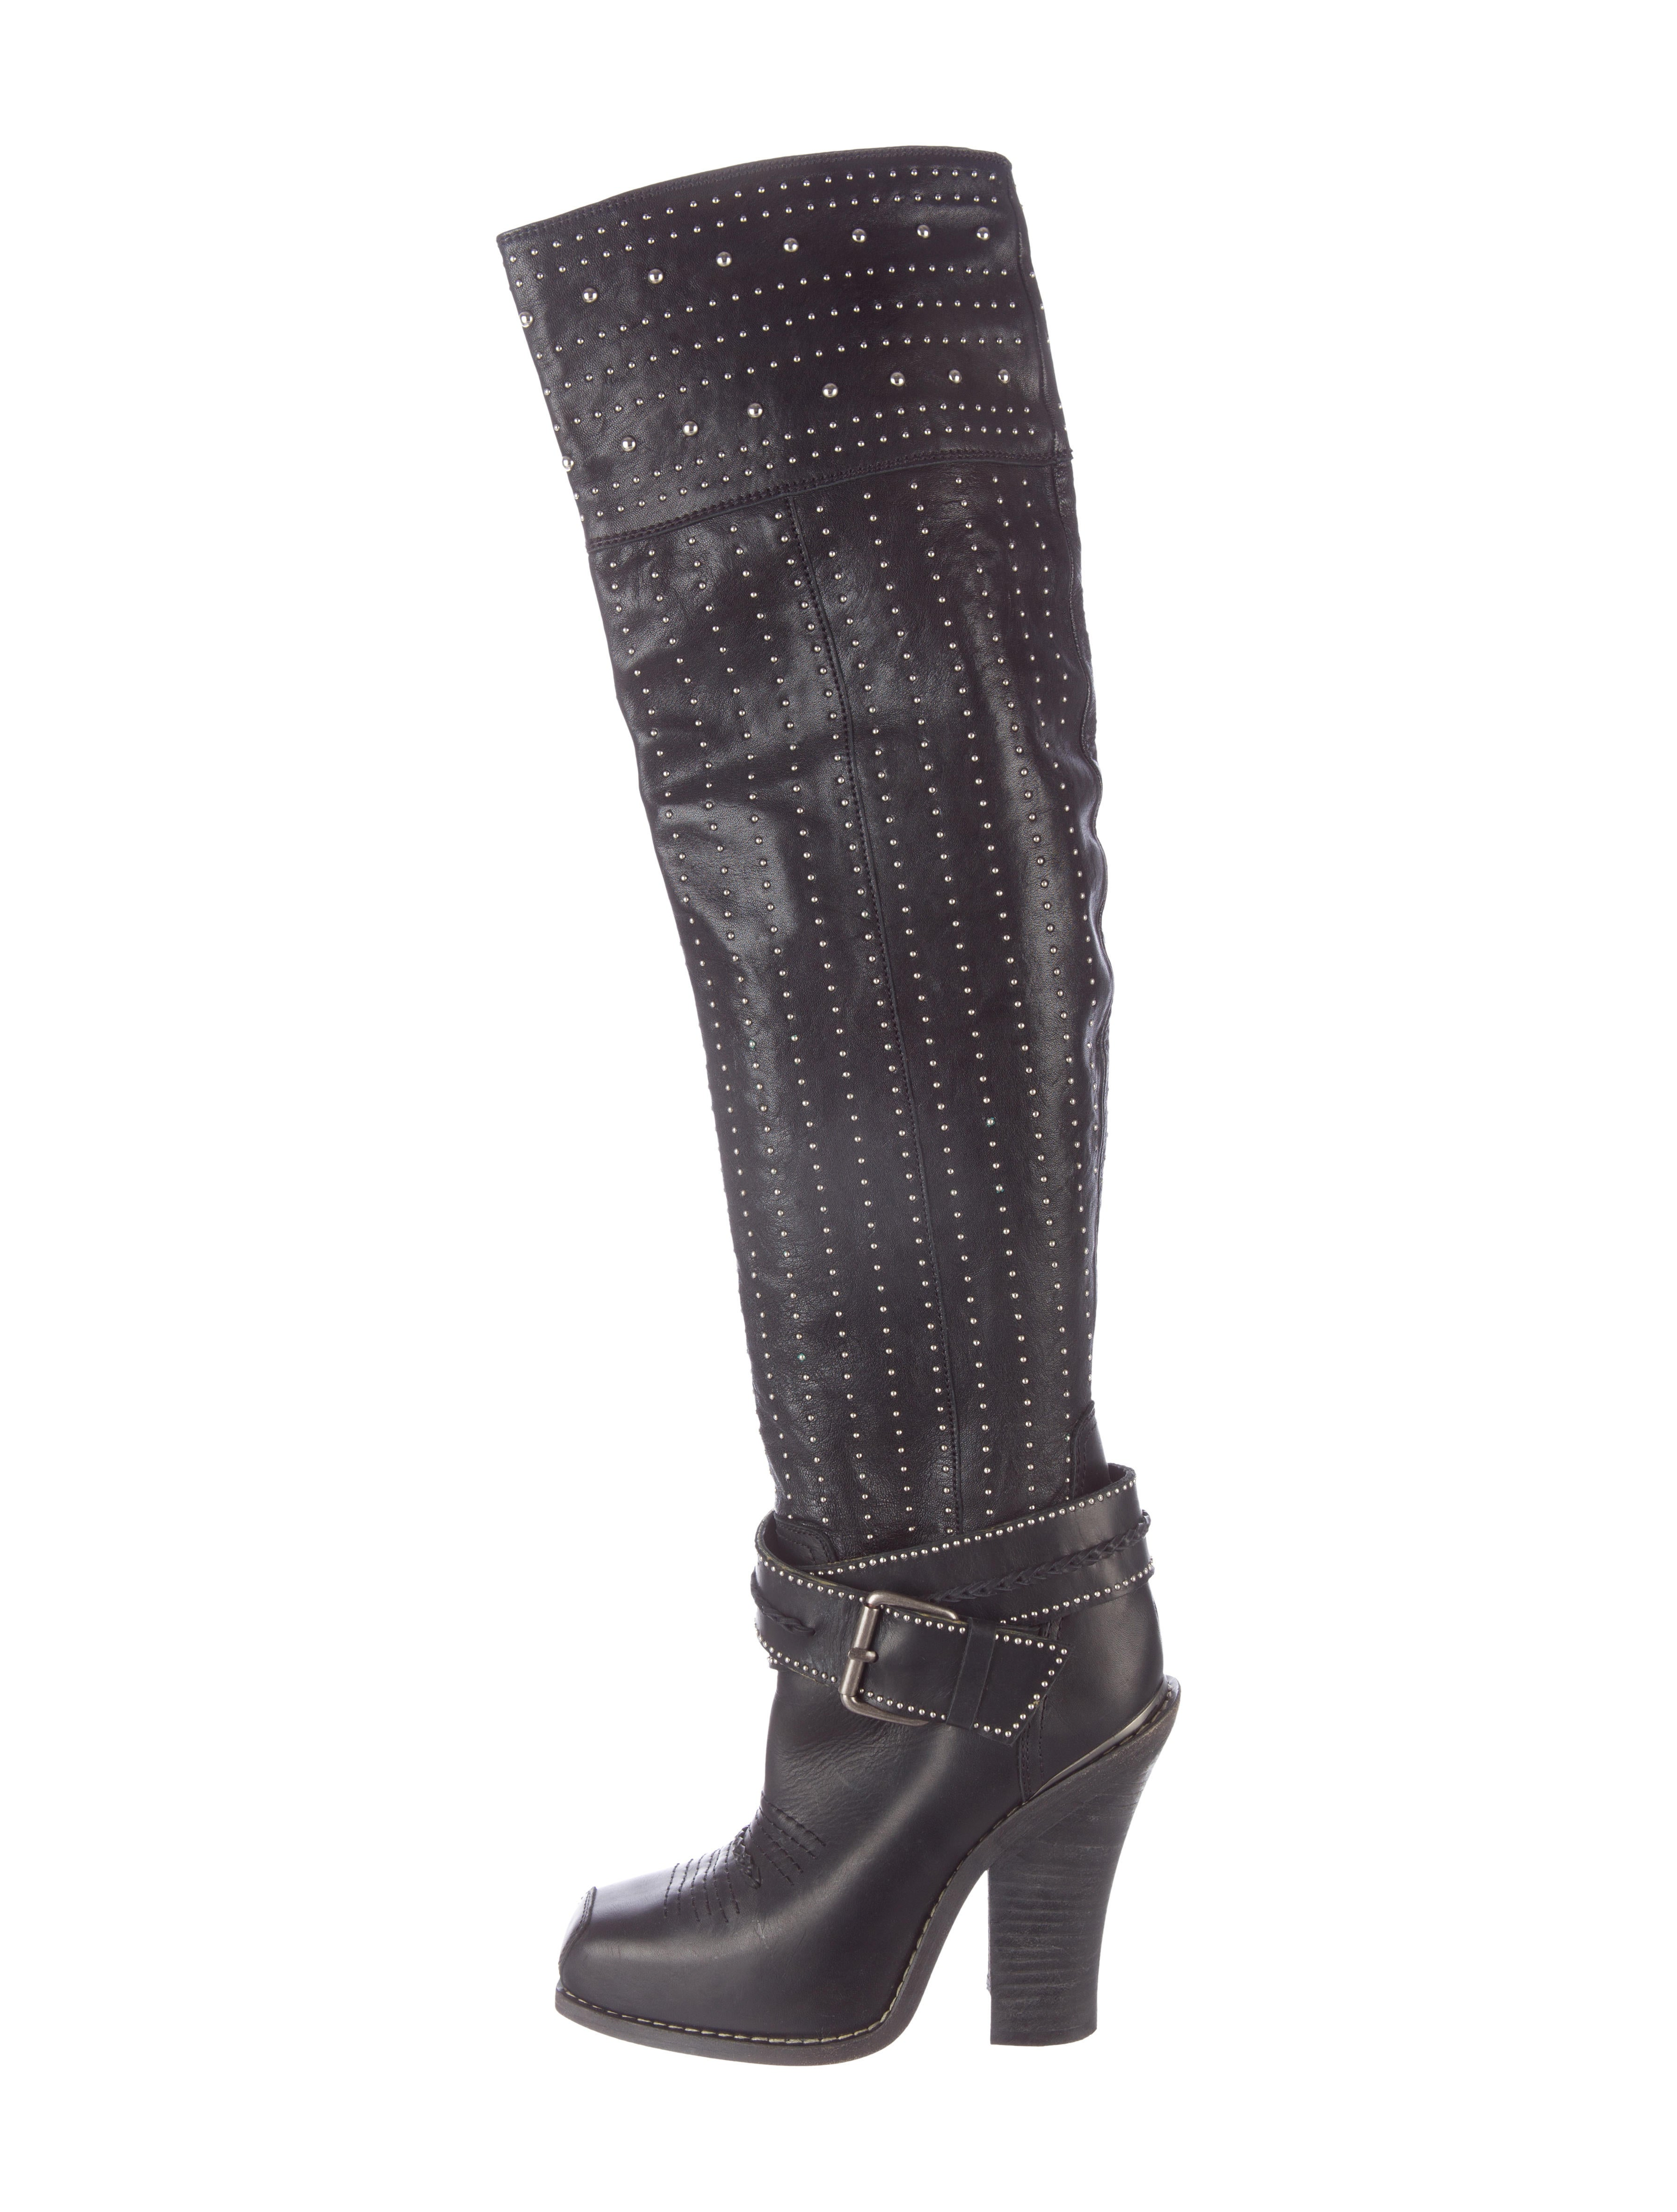 Barbara Bui Studded Knee-High Boots clearance big discount supply cheap online bm1XH0G